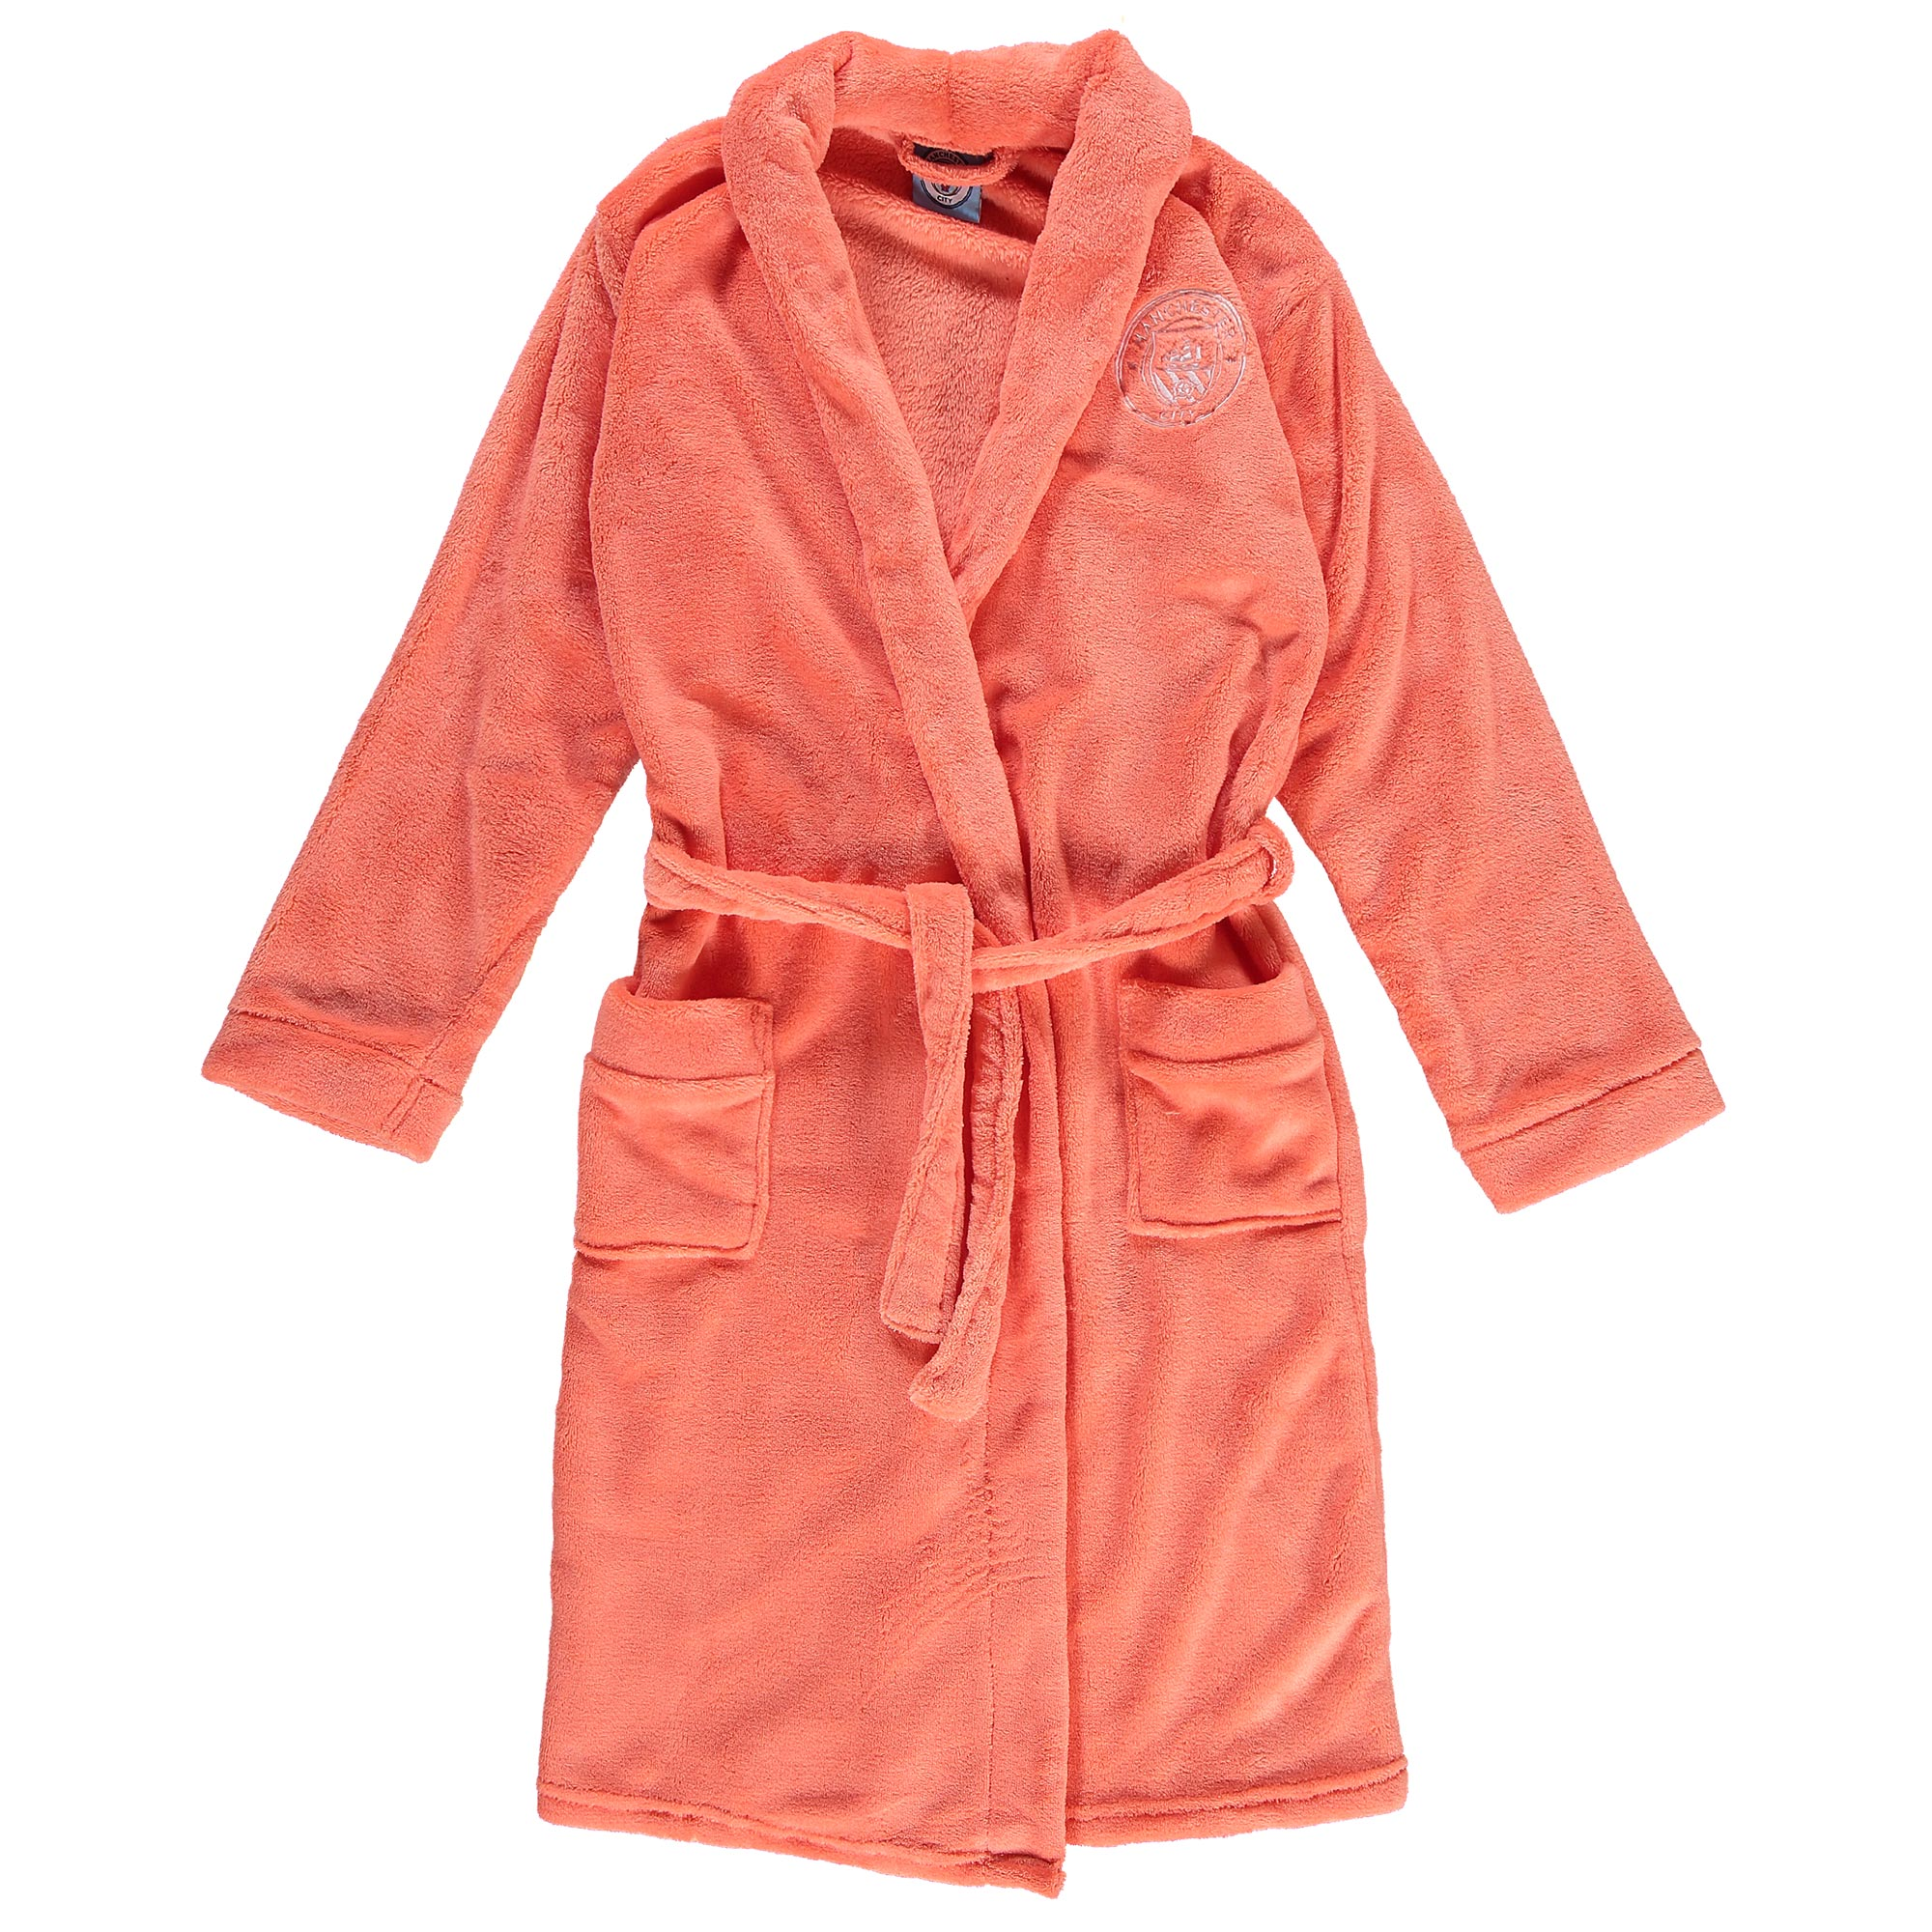 Manchester City Robe - Salmon Pink - Girls